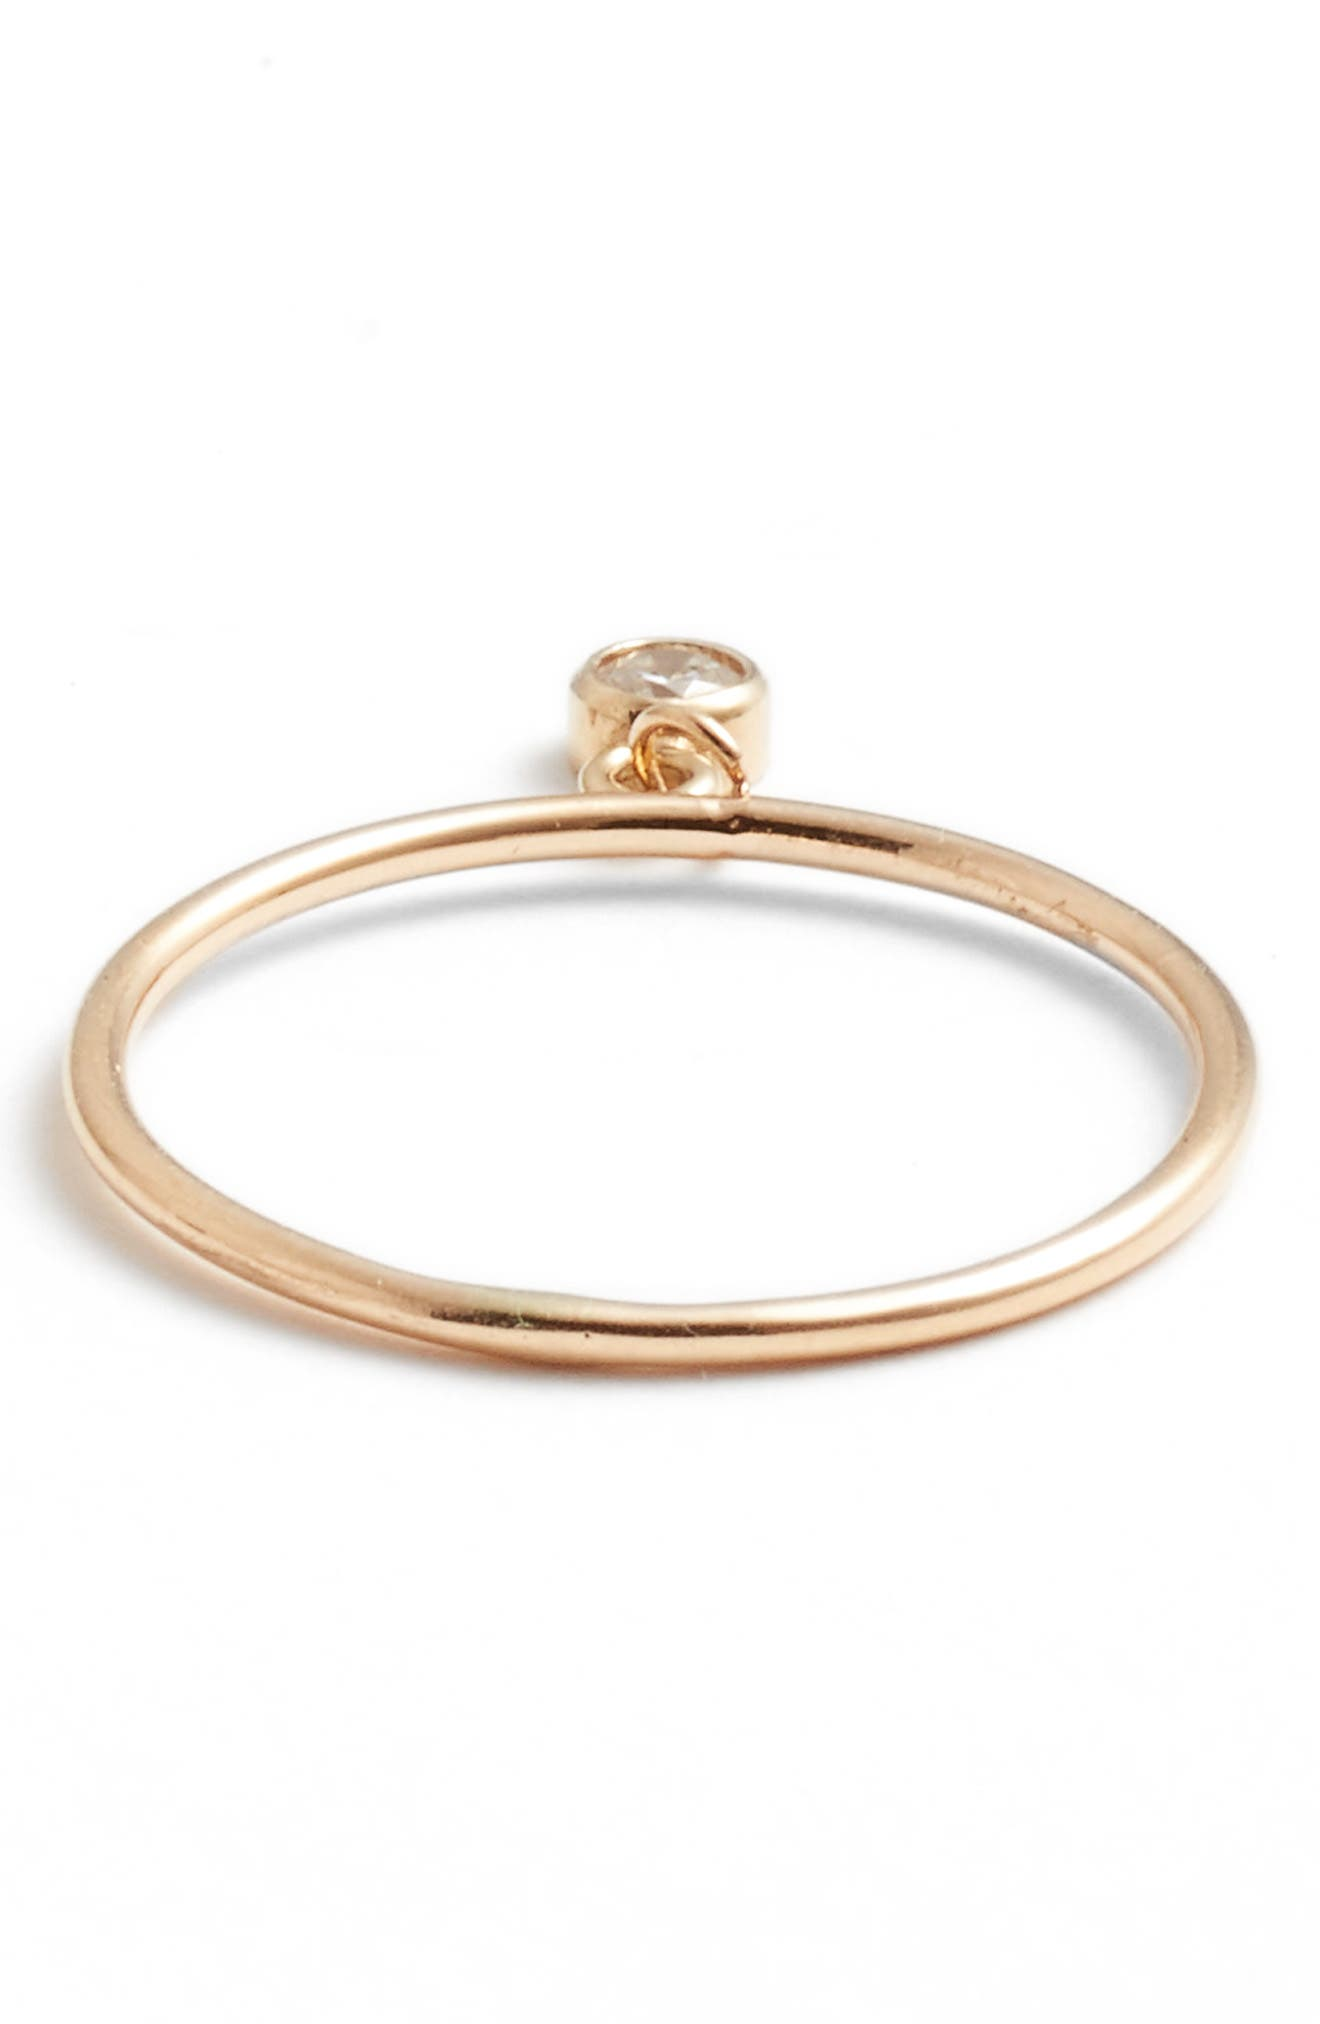 Dangling Diamond Ring,                             Alternate thumbnail 3, color,                             YELLOW GOLD